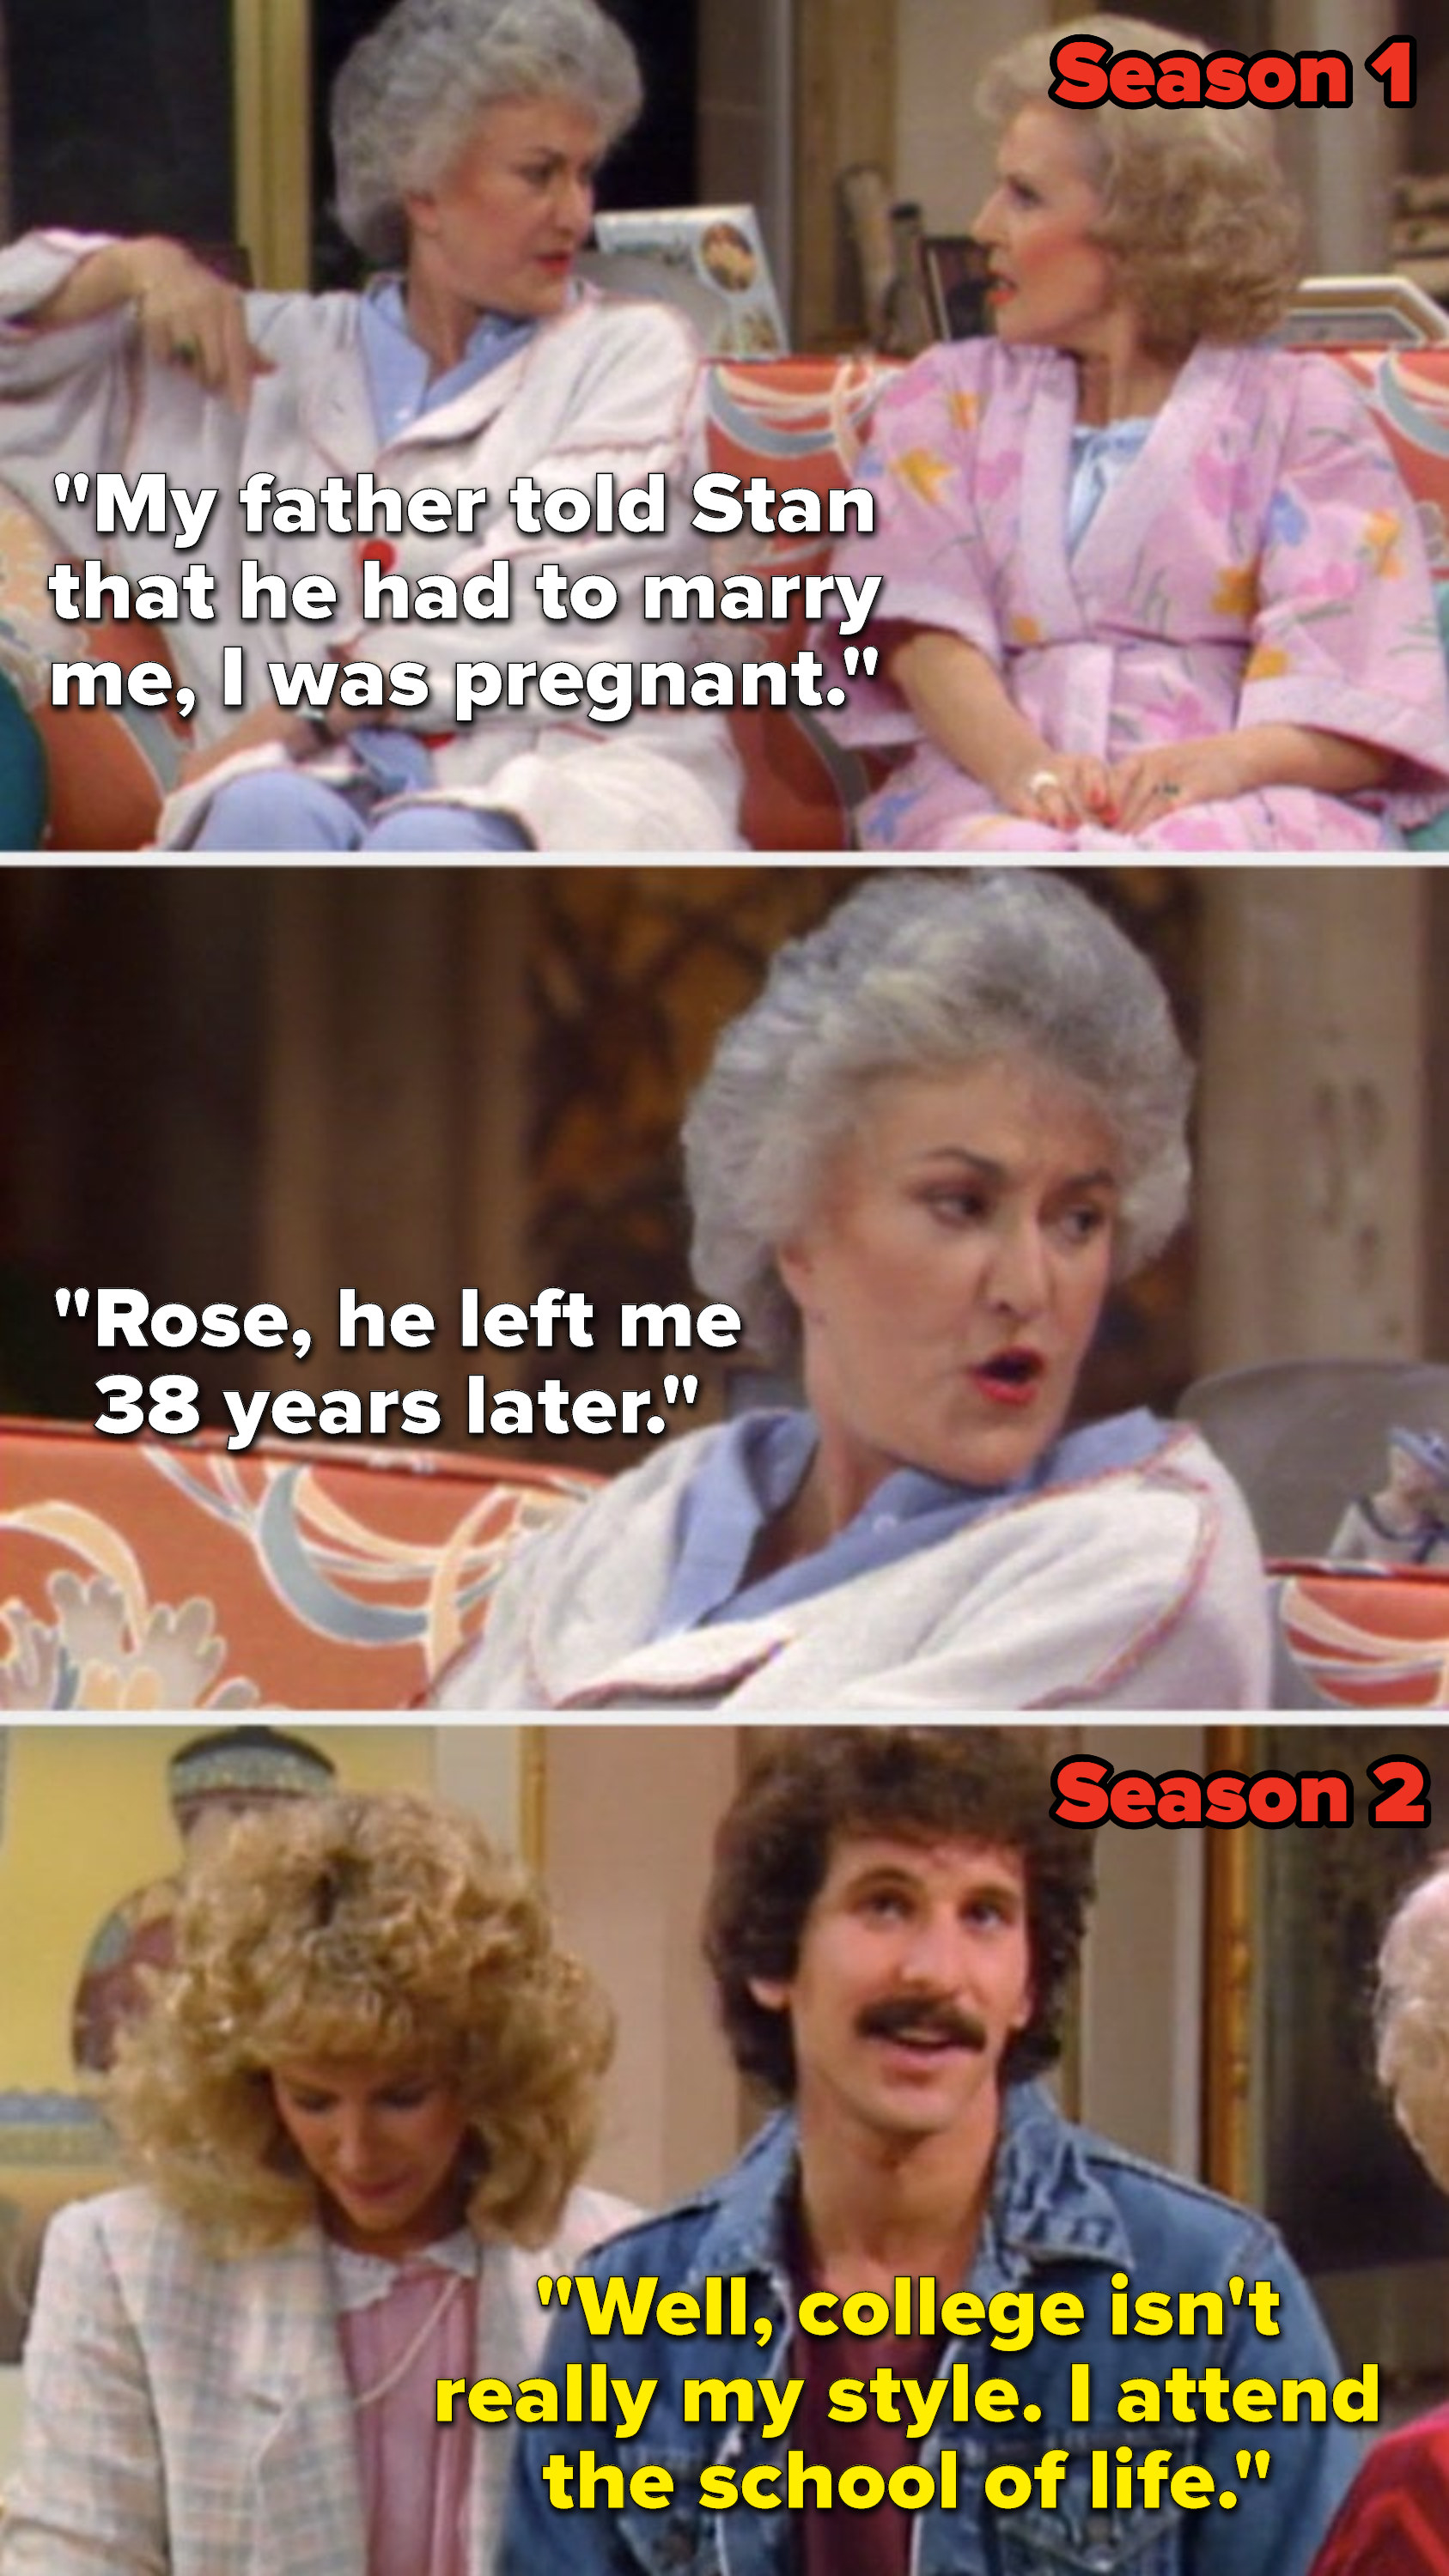 """In Season 1, Dorothy says, """"My father told Stan that he had to marry me, I was pregnant...Rose, he left me 38 years later,"""" but in Season 2, Dorothy's son says, """"Well, college isn't really my style, I attend the school of life."""""""